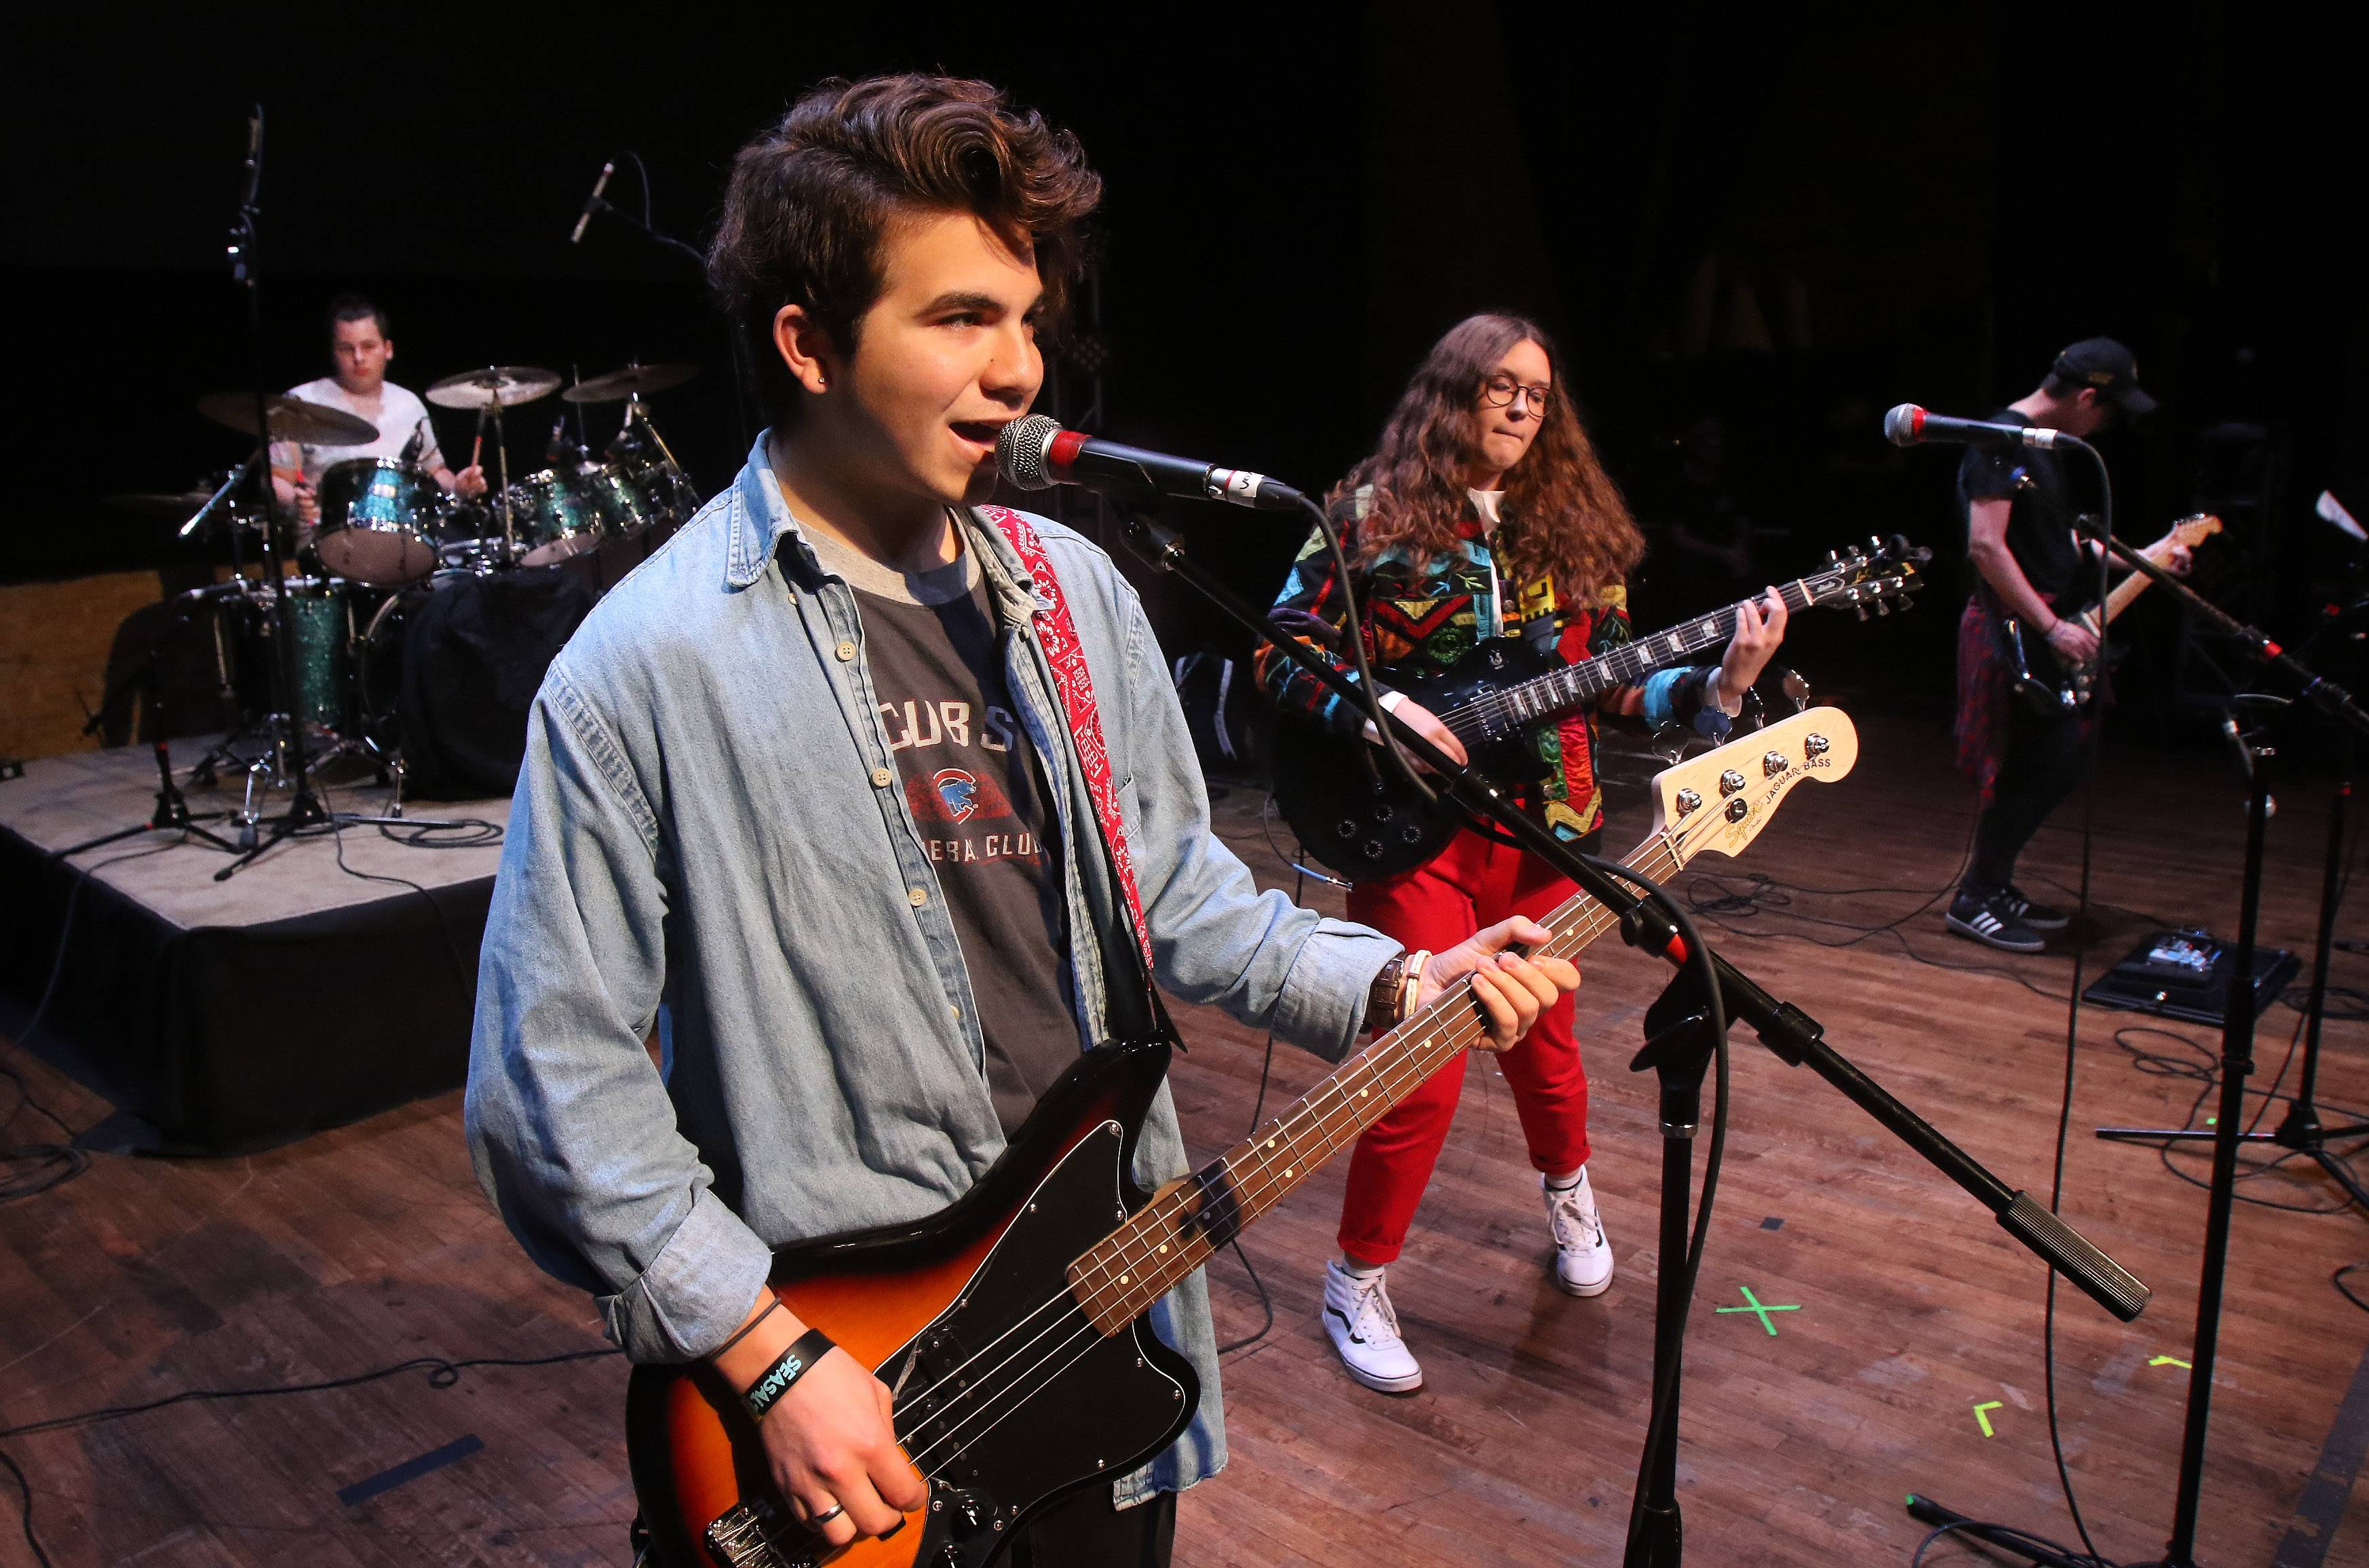 The band Seasalt won Suburban Chicago's Got Talent last year. Acts who want to compete this summer should sign up by 5 p.m. May 28.